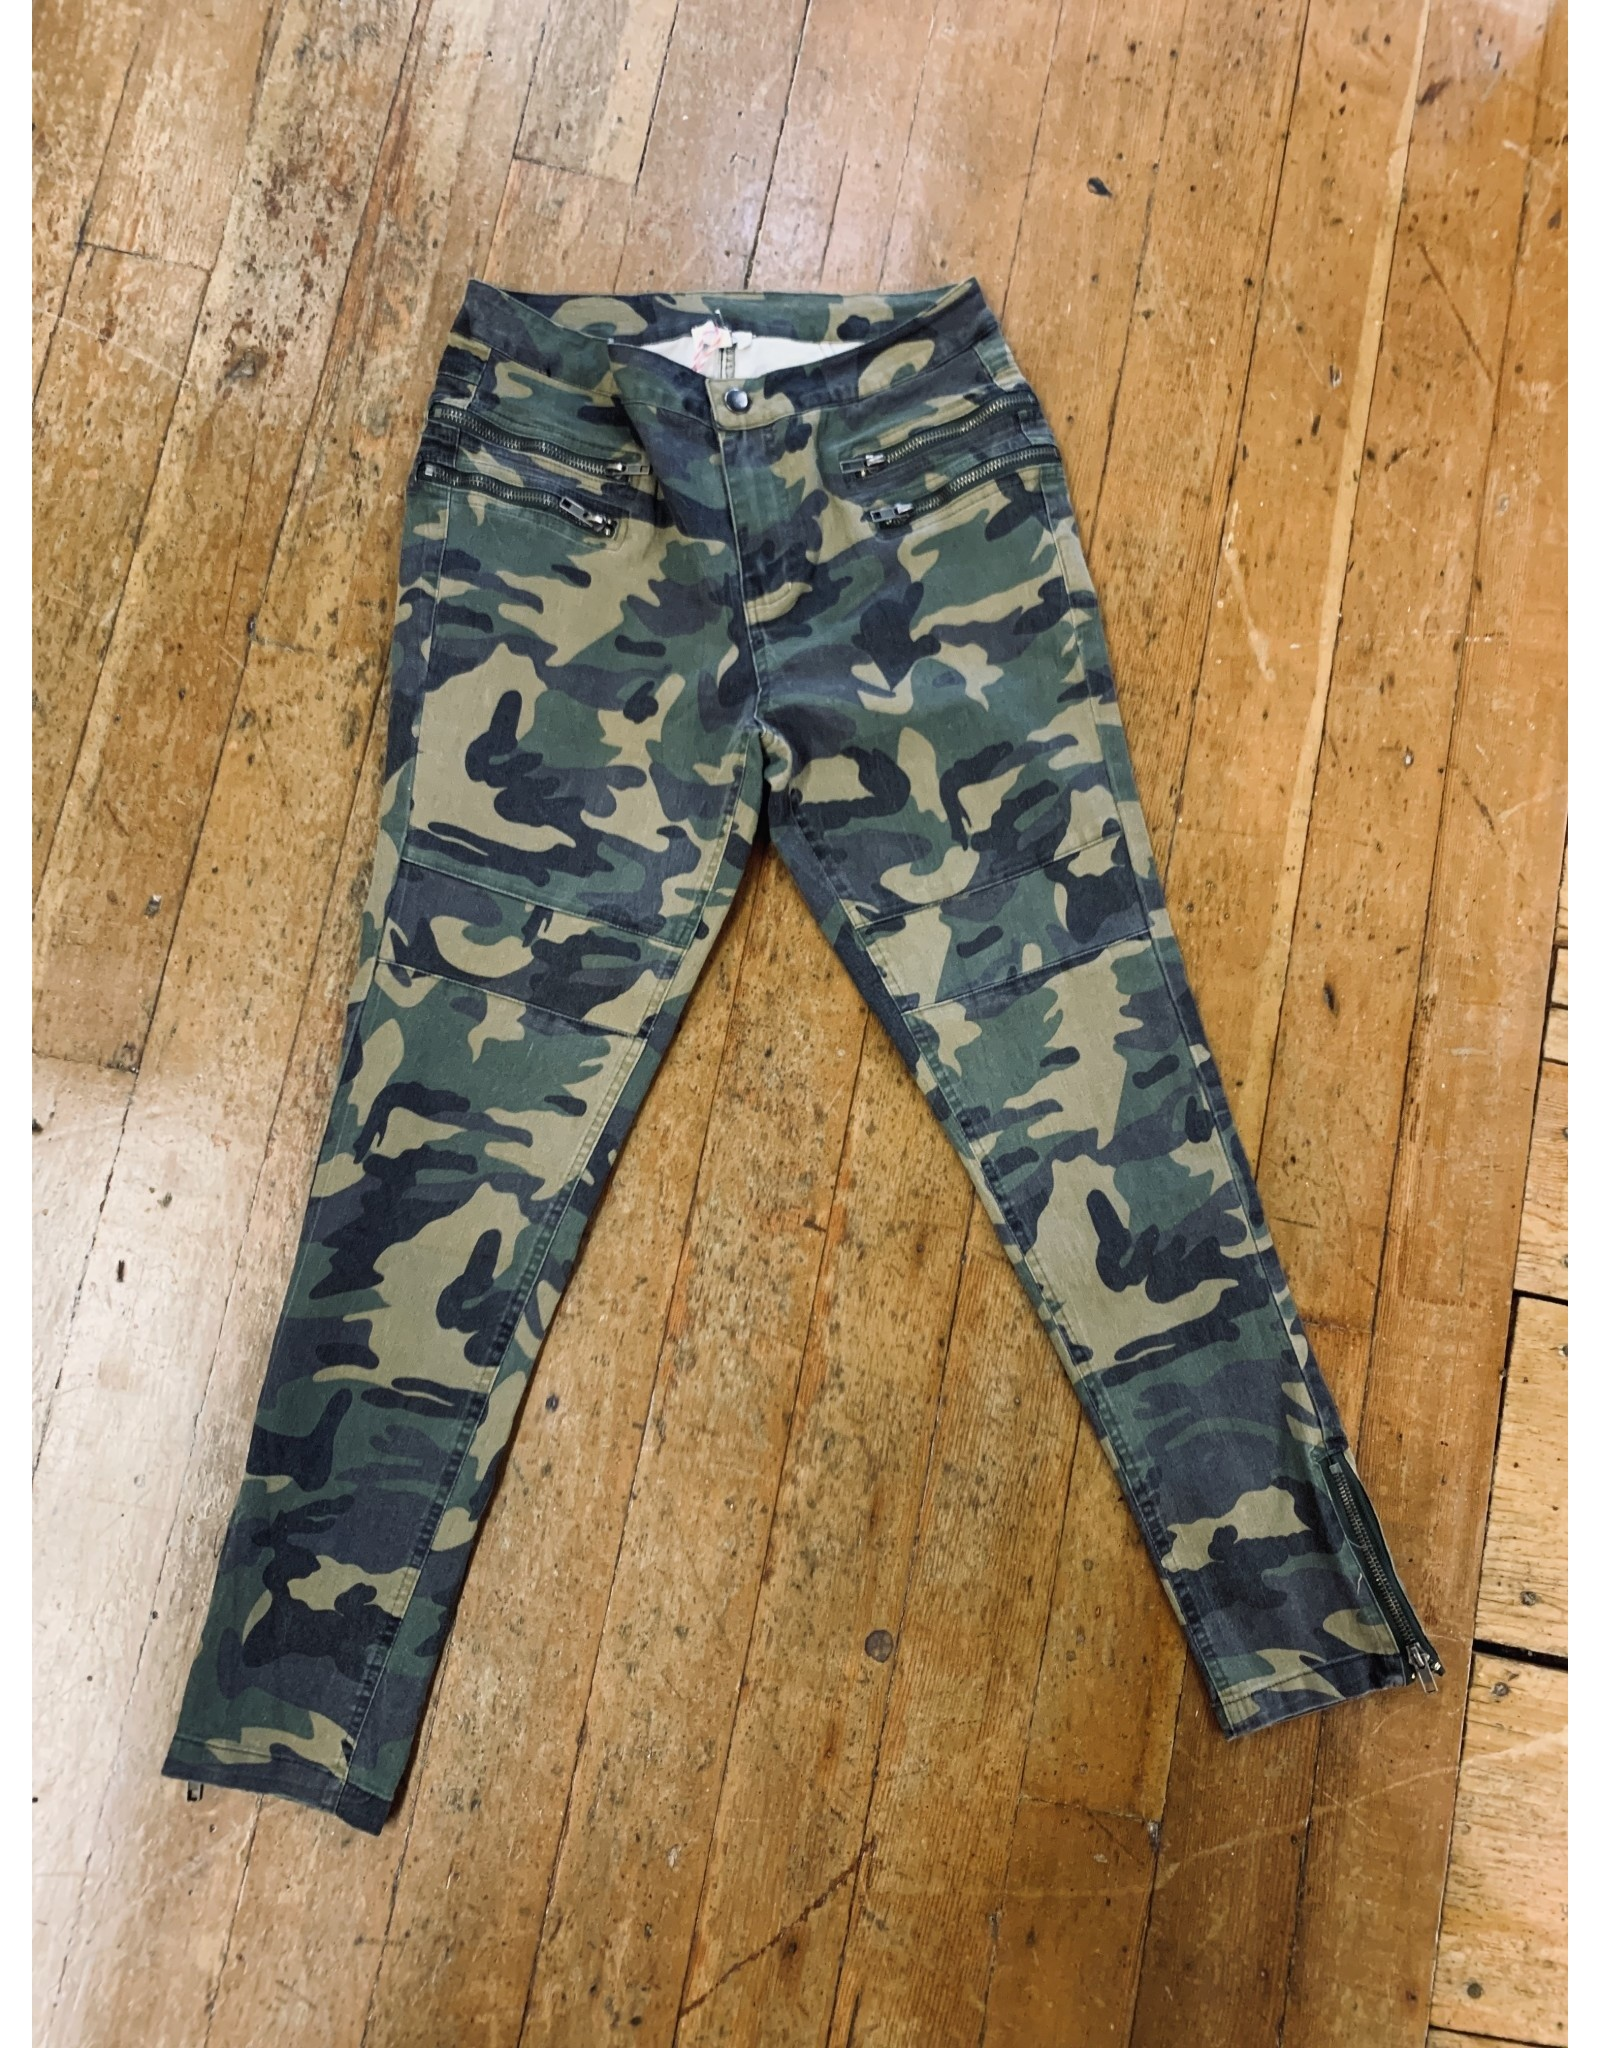 CAMO MOTO PANTS WITH ZIPPER FRONT AND ANKLE DETAIL